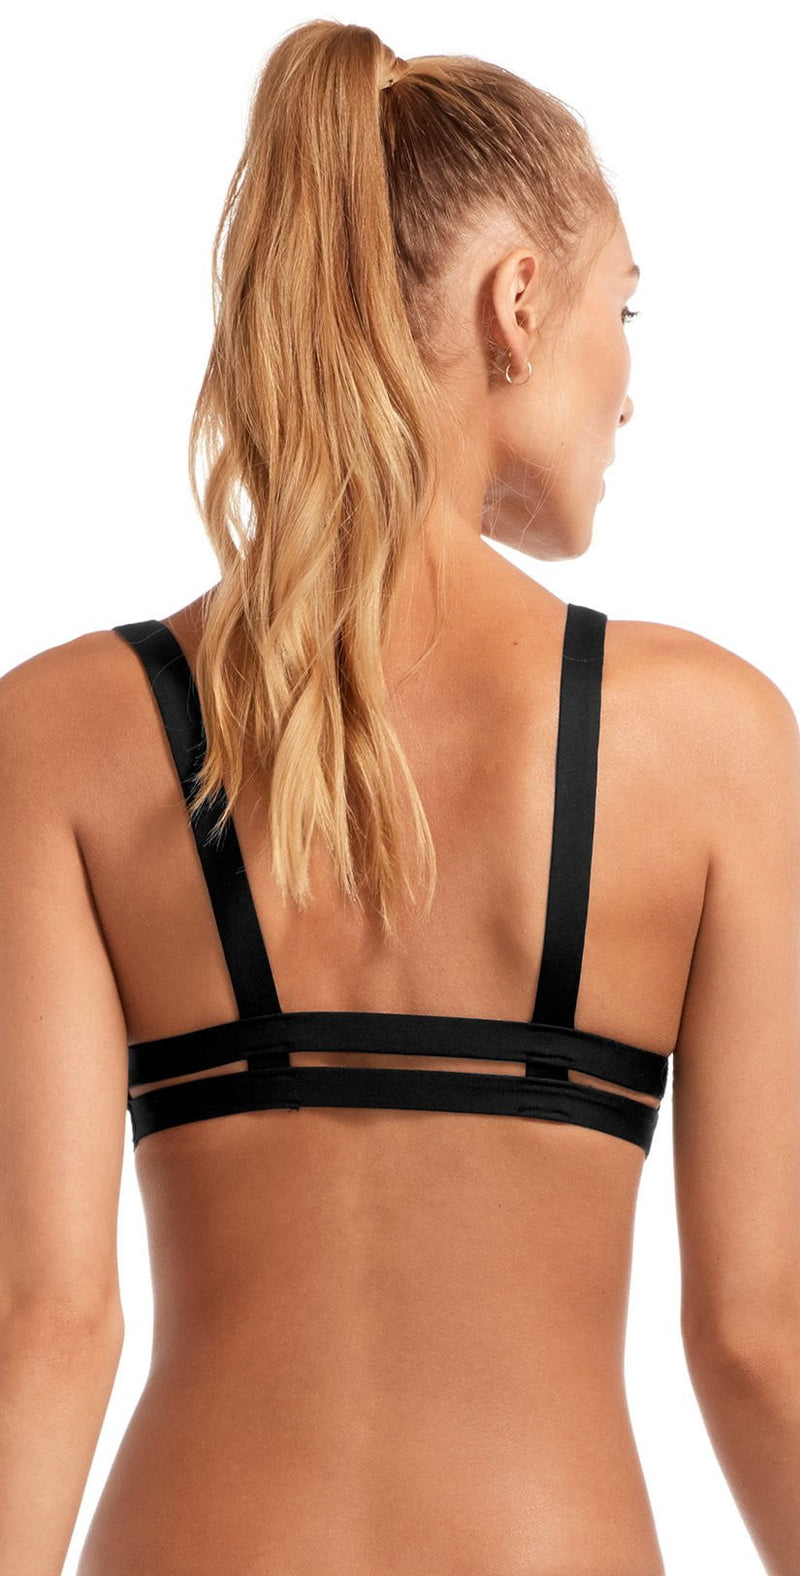 Vitamin A EcoLux Neutra Bralette Top in Black 40T-ECB: